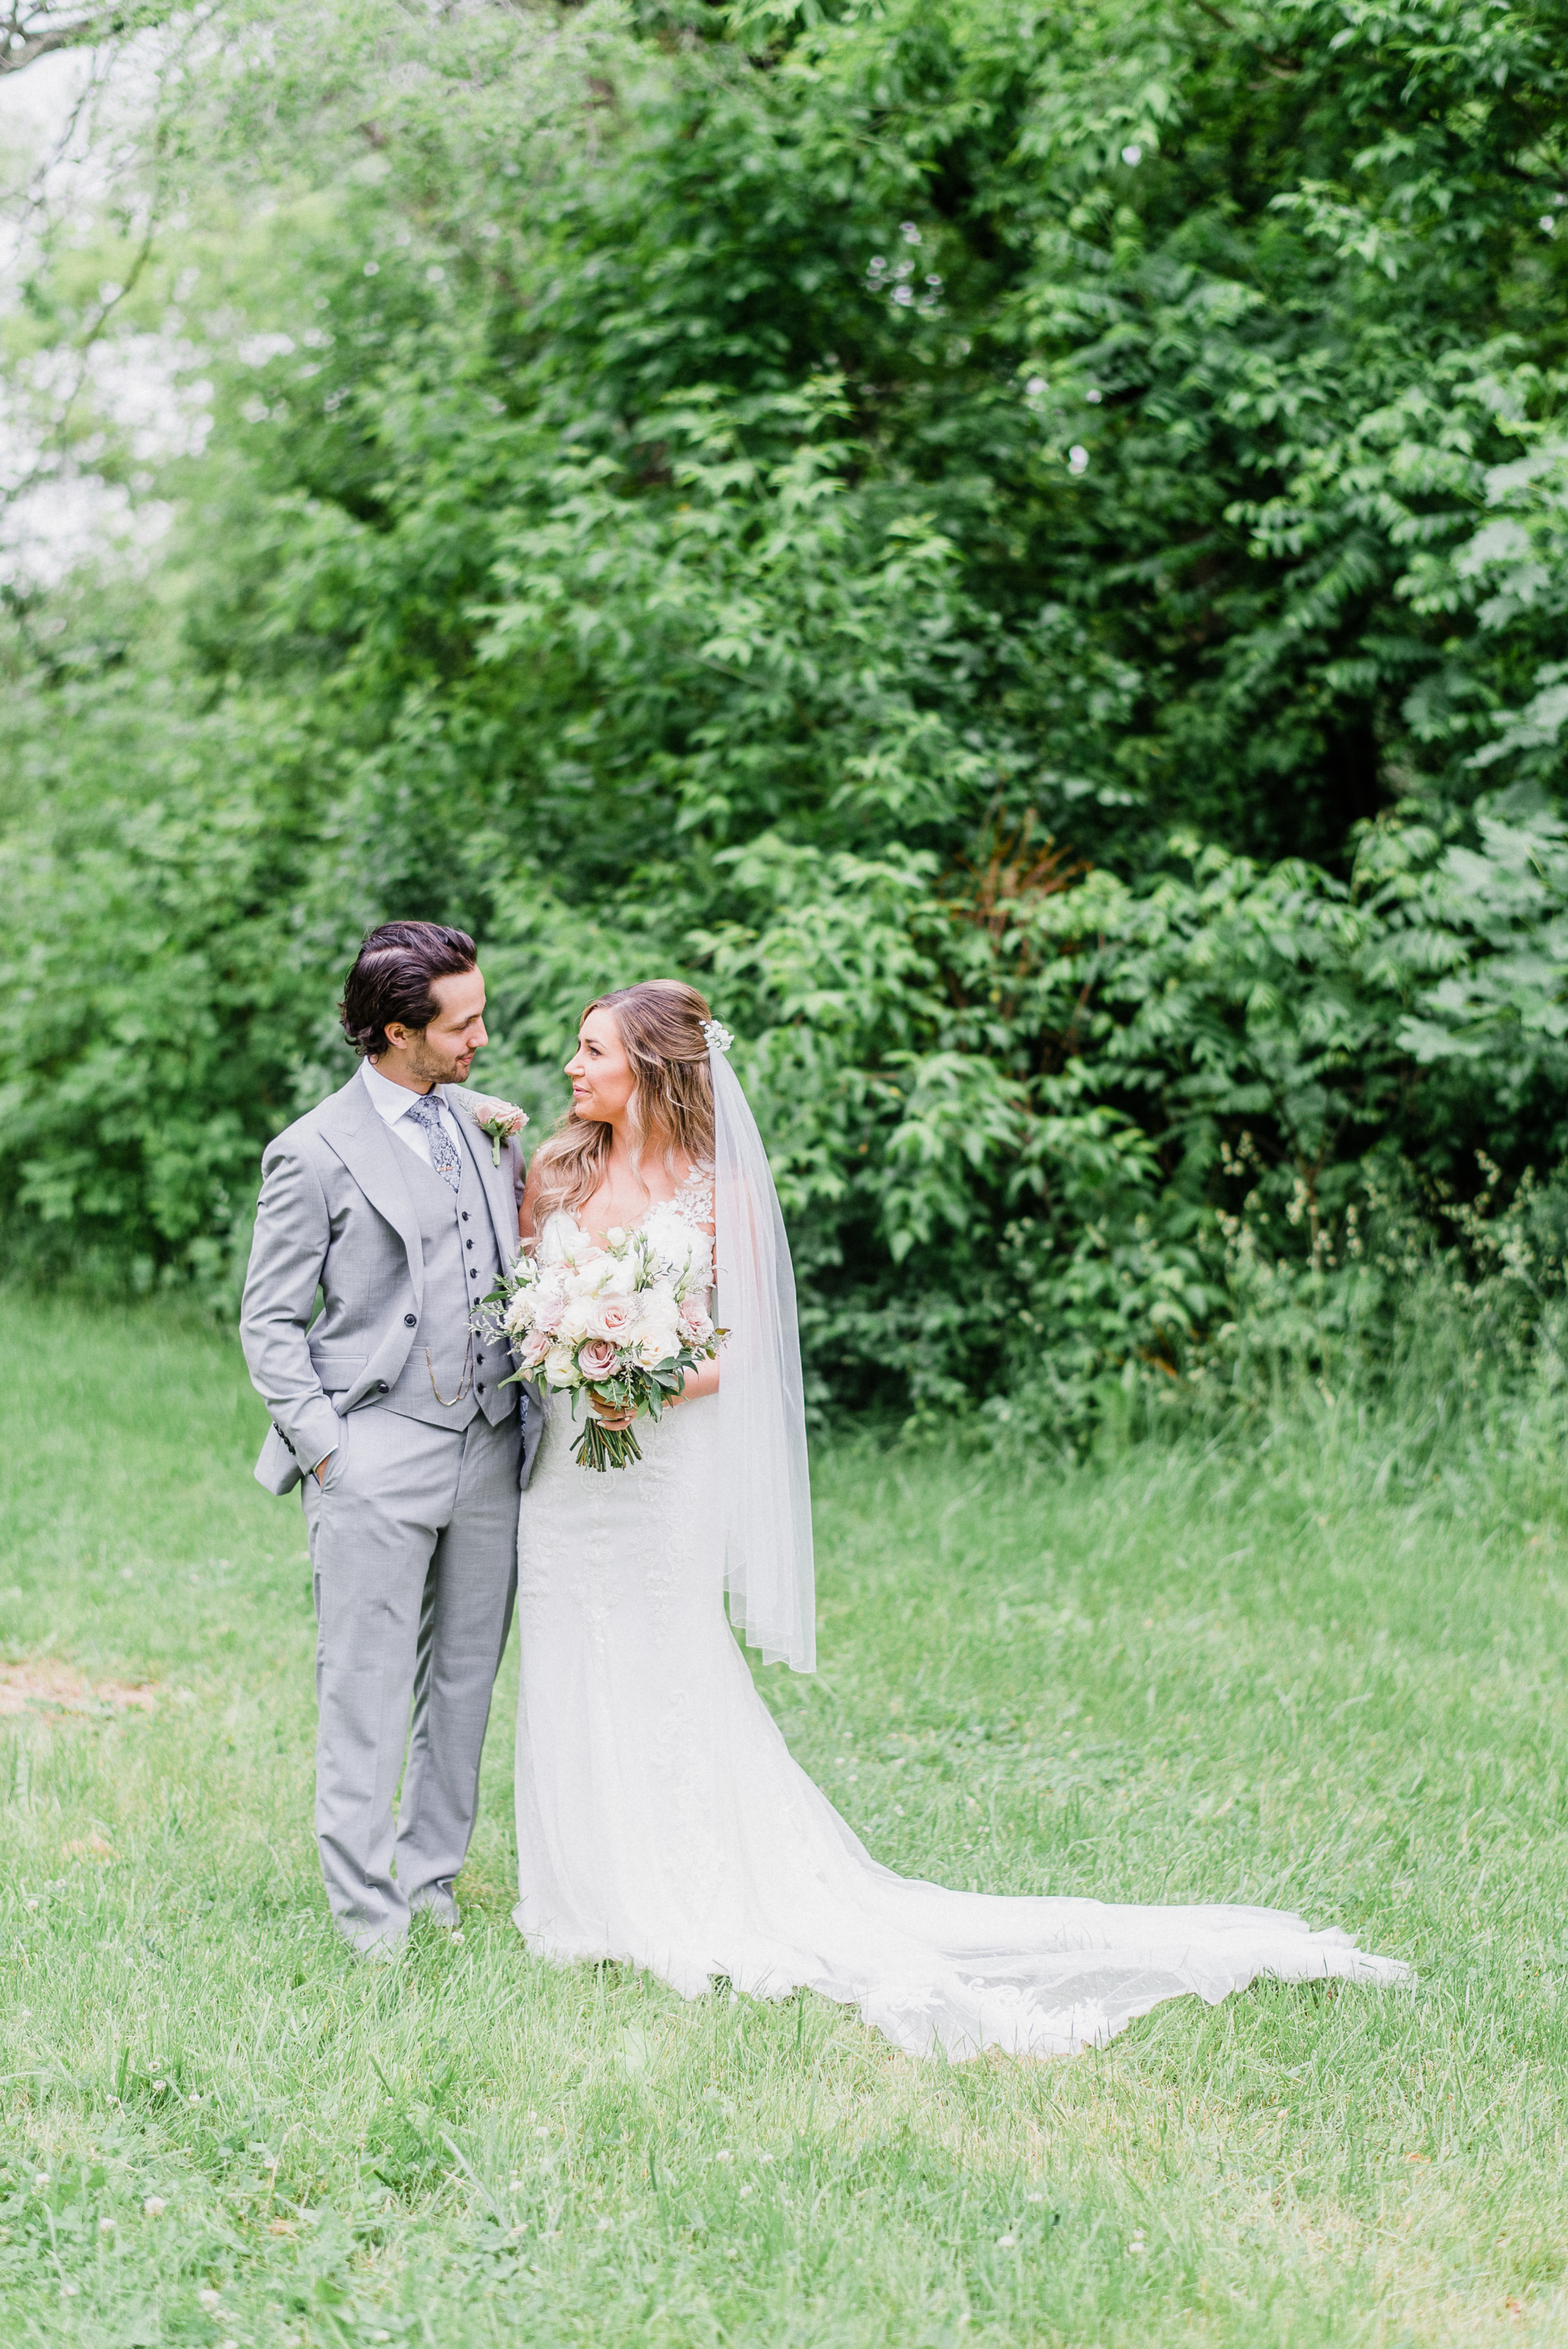 Bride and Groom Portraits at LaSalle Park Conference Centre by Jenn Kavanagh Photography | Burlington, Ontario Wedding